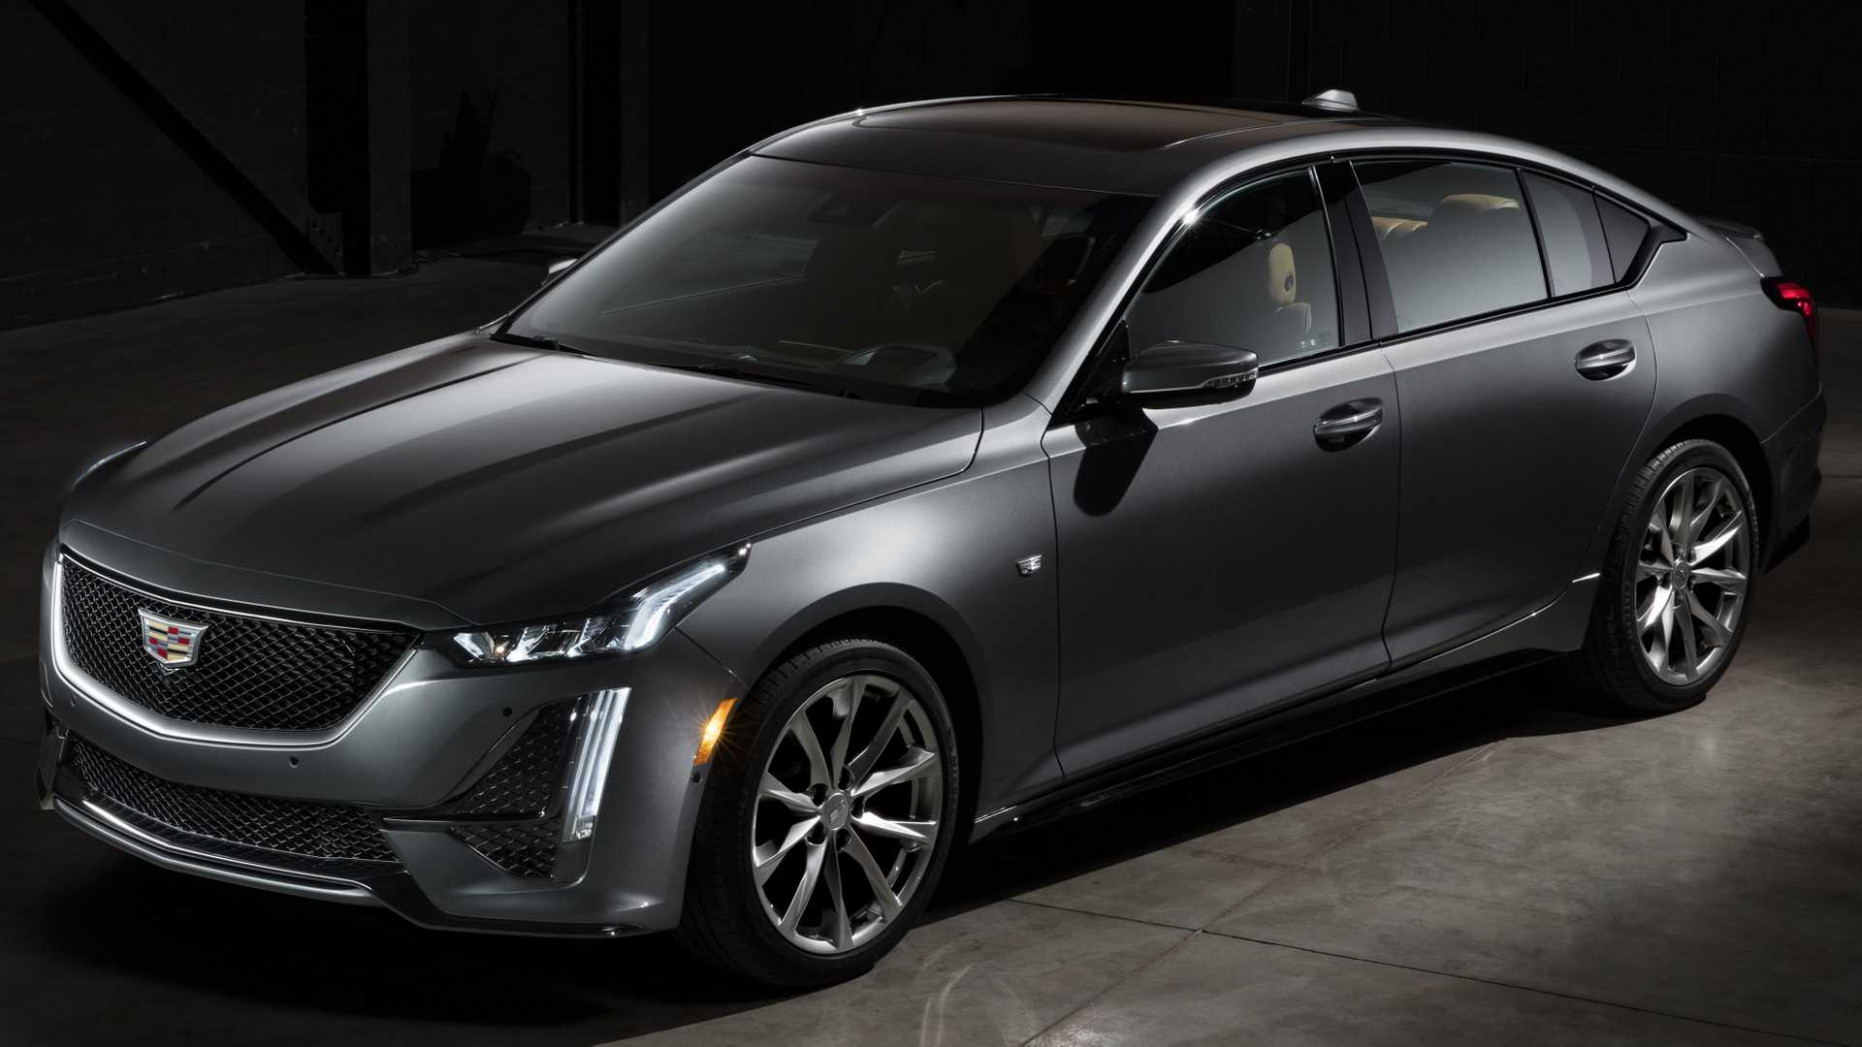 Cadillac CT8 (8): CTS-Nachfolger offiziell vorgestellt - 2020 cadillac images